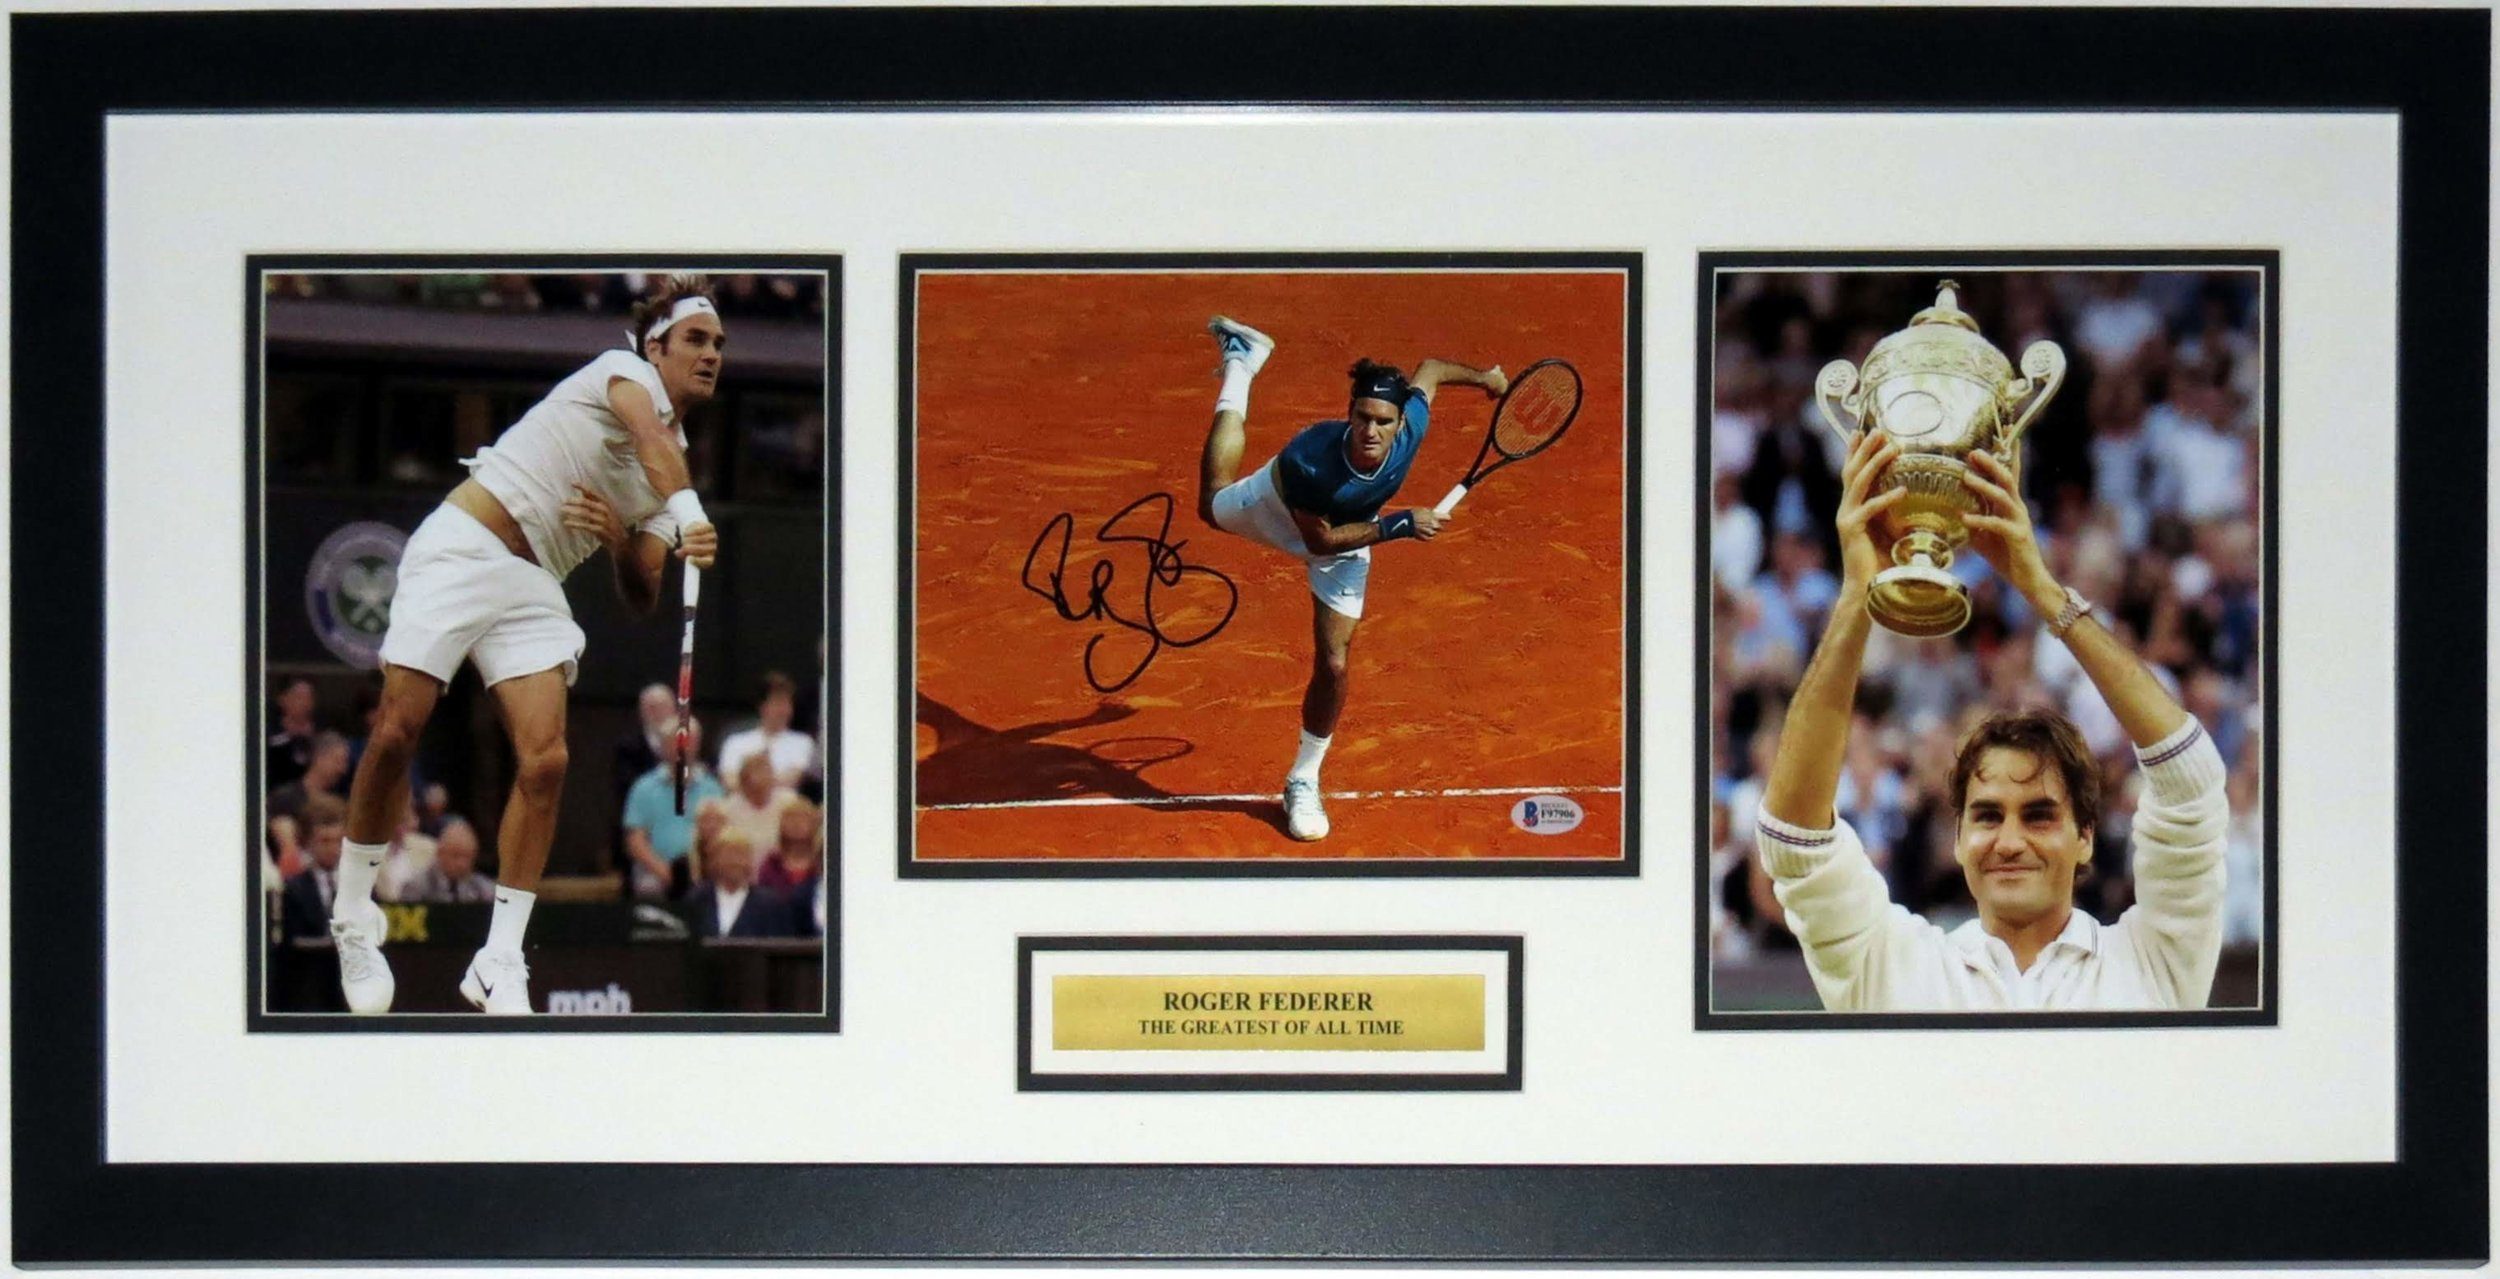 Roger Federer Signed Wimbledon Championship 8x10 Photo - Beckett Authentication Services BAS COA - Professionally Framed & Plate